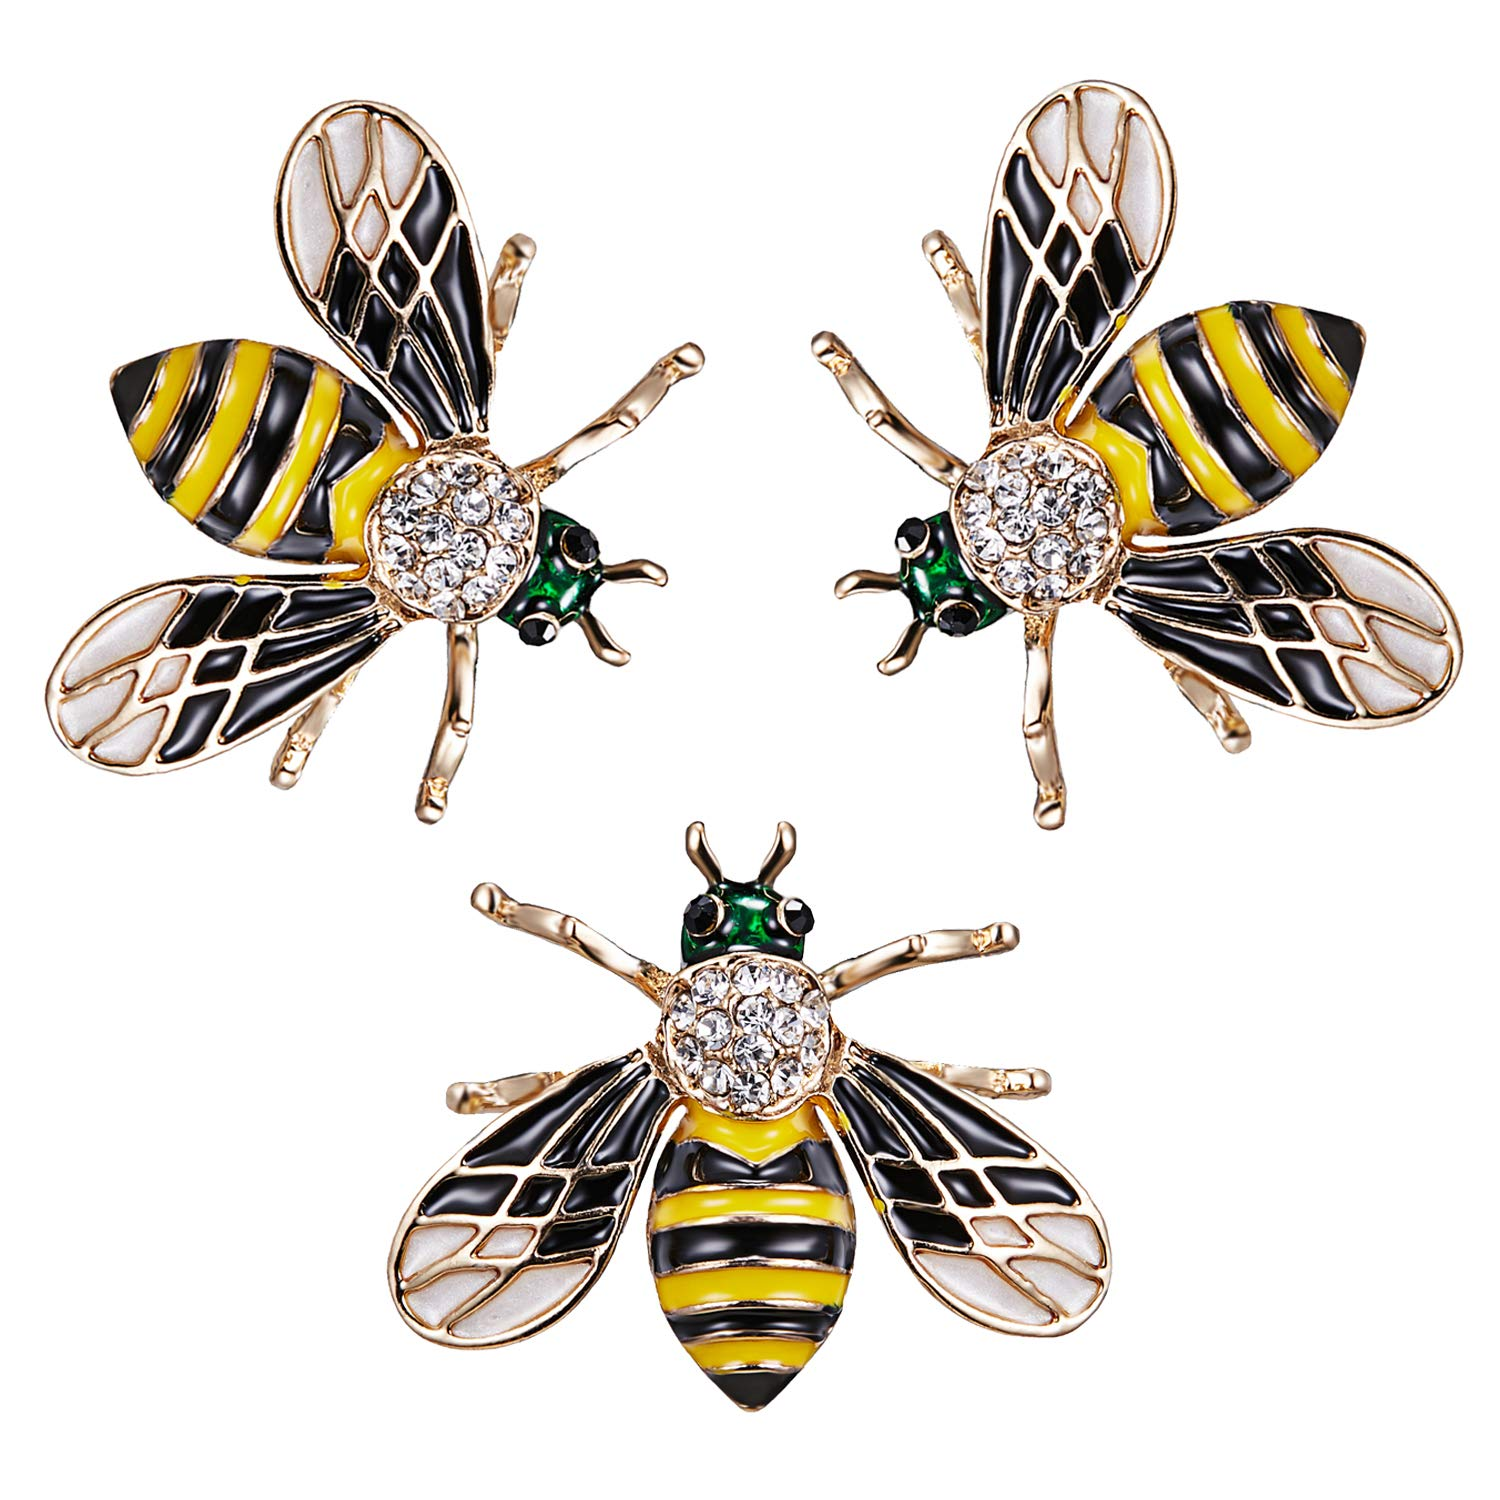 RINHOO FRIENDSHIP Cute Honeybee Animal Insect Brooches Pin Colorful Crystal Rhinestones Bee Shape Corsages Scarf Clips Jewelry For Women Girls (3PCS honeybee-black)